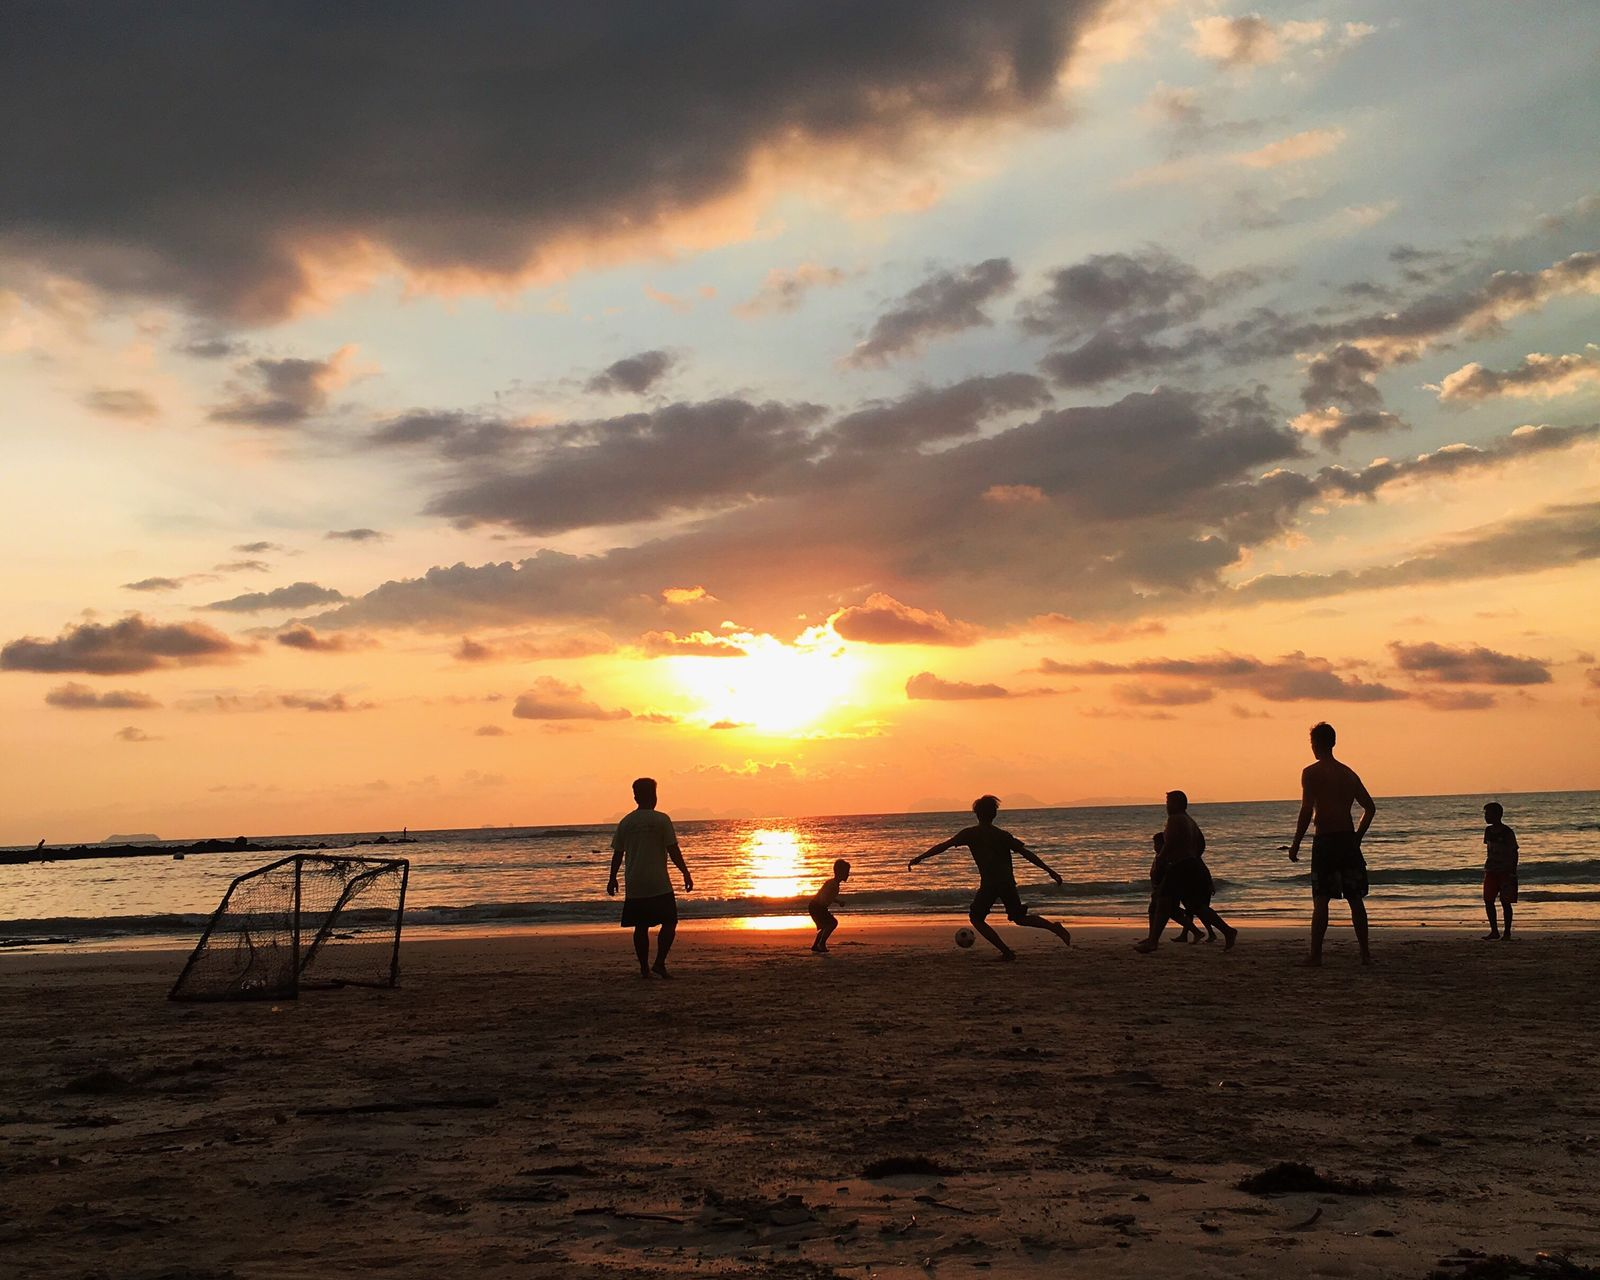 beach sunset sea sand Nature beauty in Nature water orange color scenics sky Silhouette lifestyles leisure activity net - sports equipment horizon over water playing full length Vacations enjoyment outdoors The Street Photographer - 2017 EyeEm Awards Live for the Story Connected by Travel